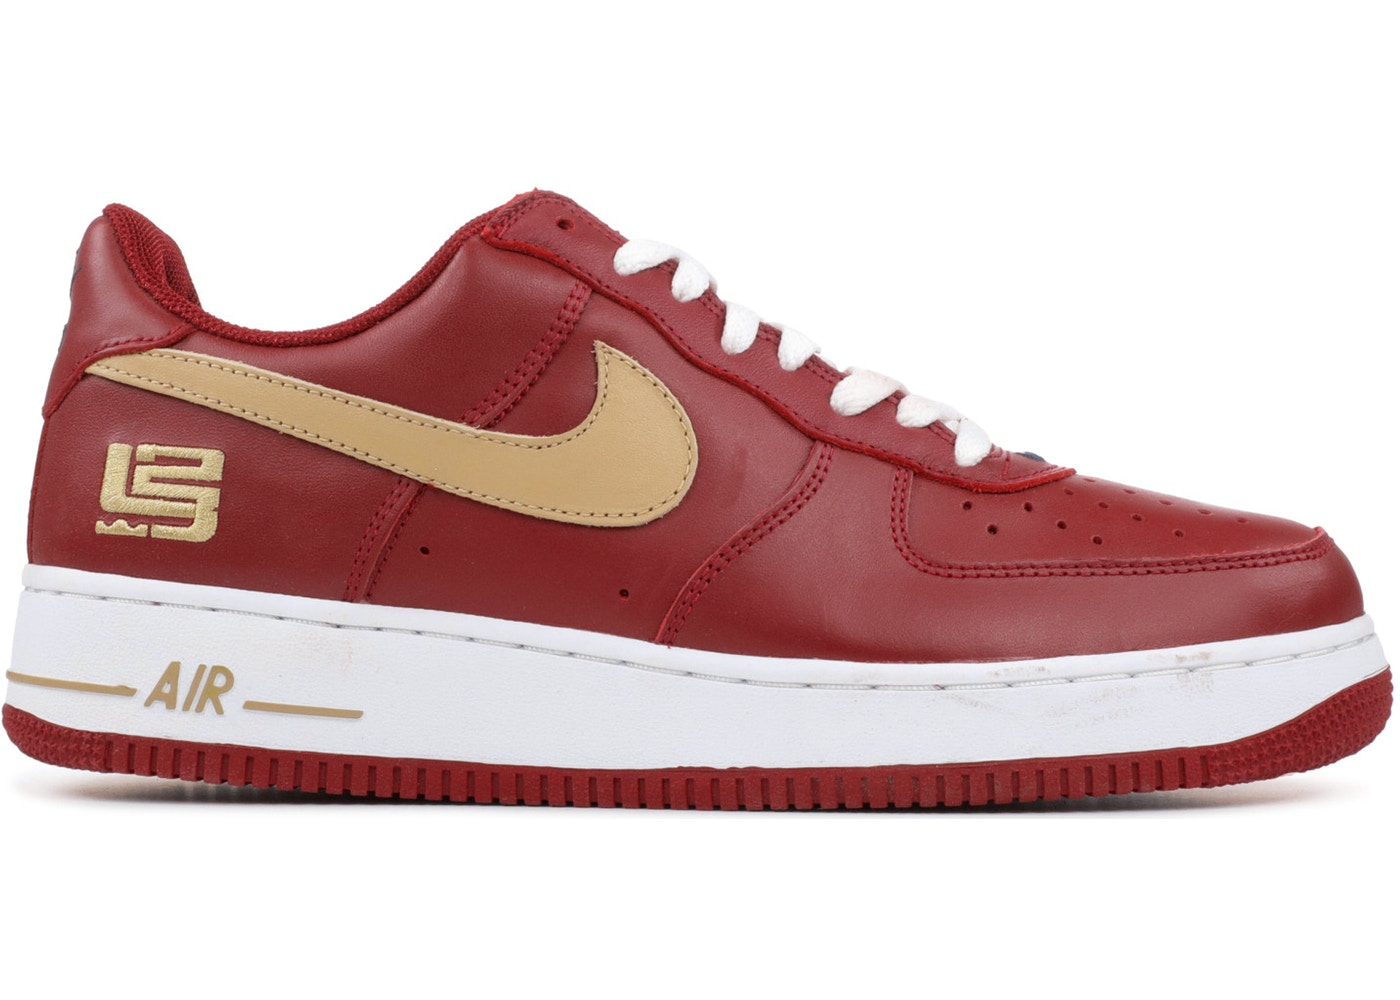 uk availability ab15a 3ccdd Air Force 1 Low LeBron James (Cavs) - 306353-671